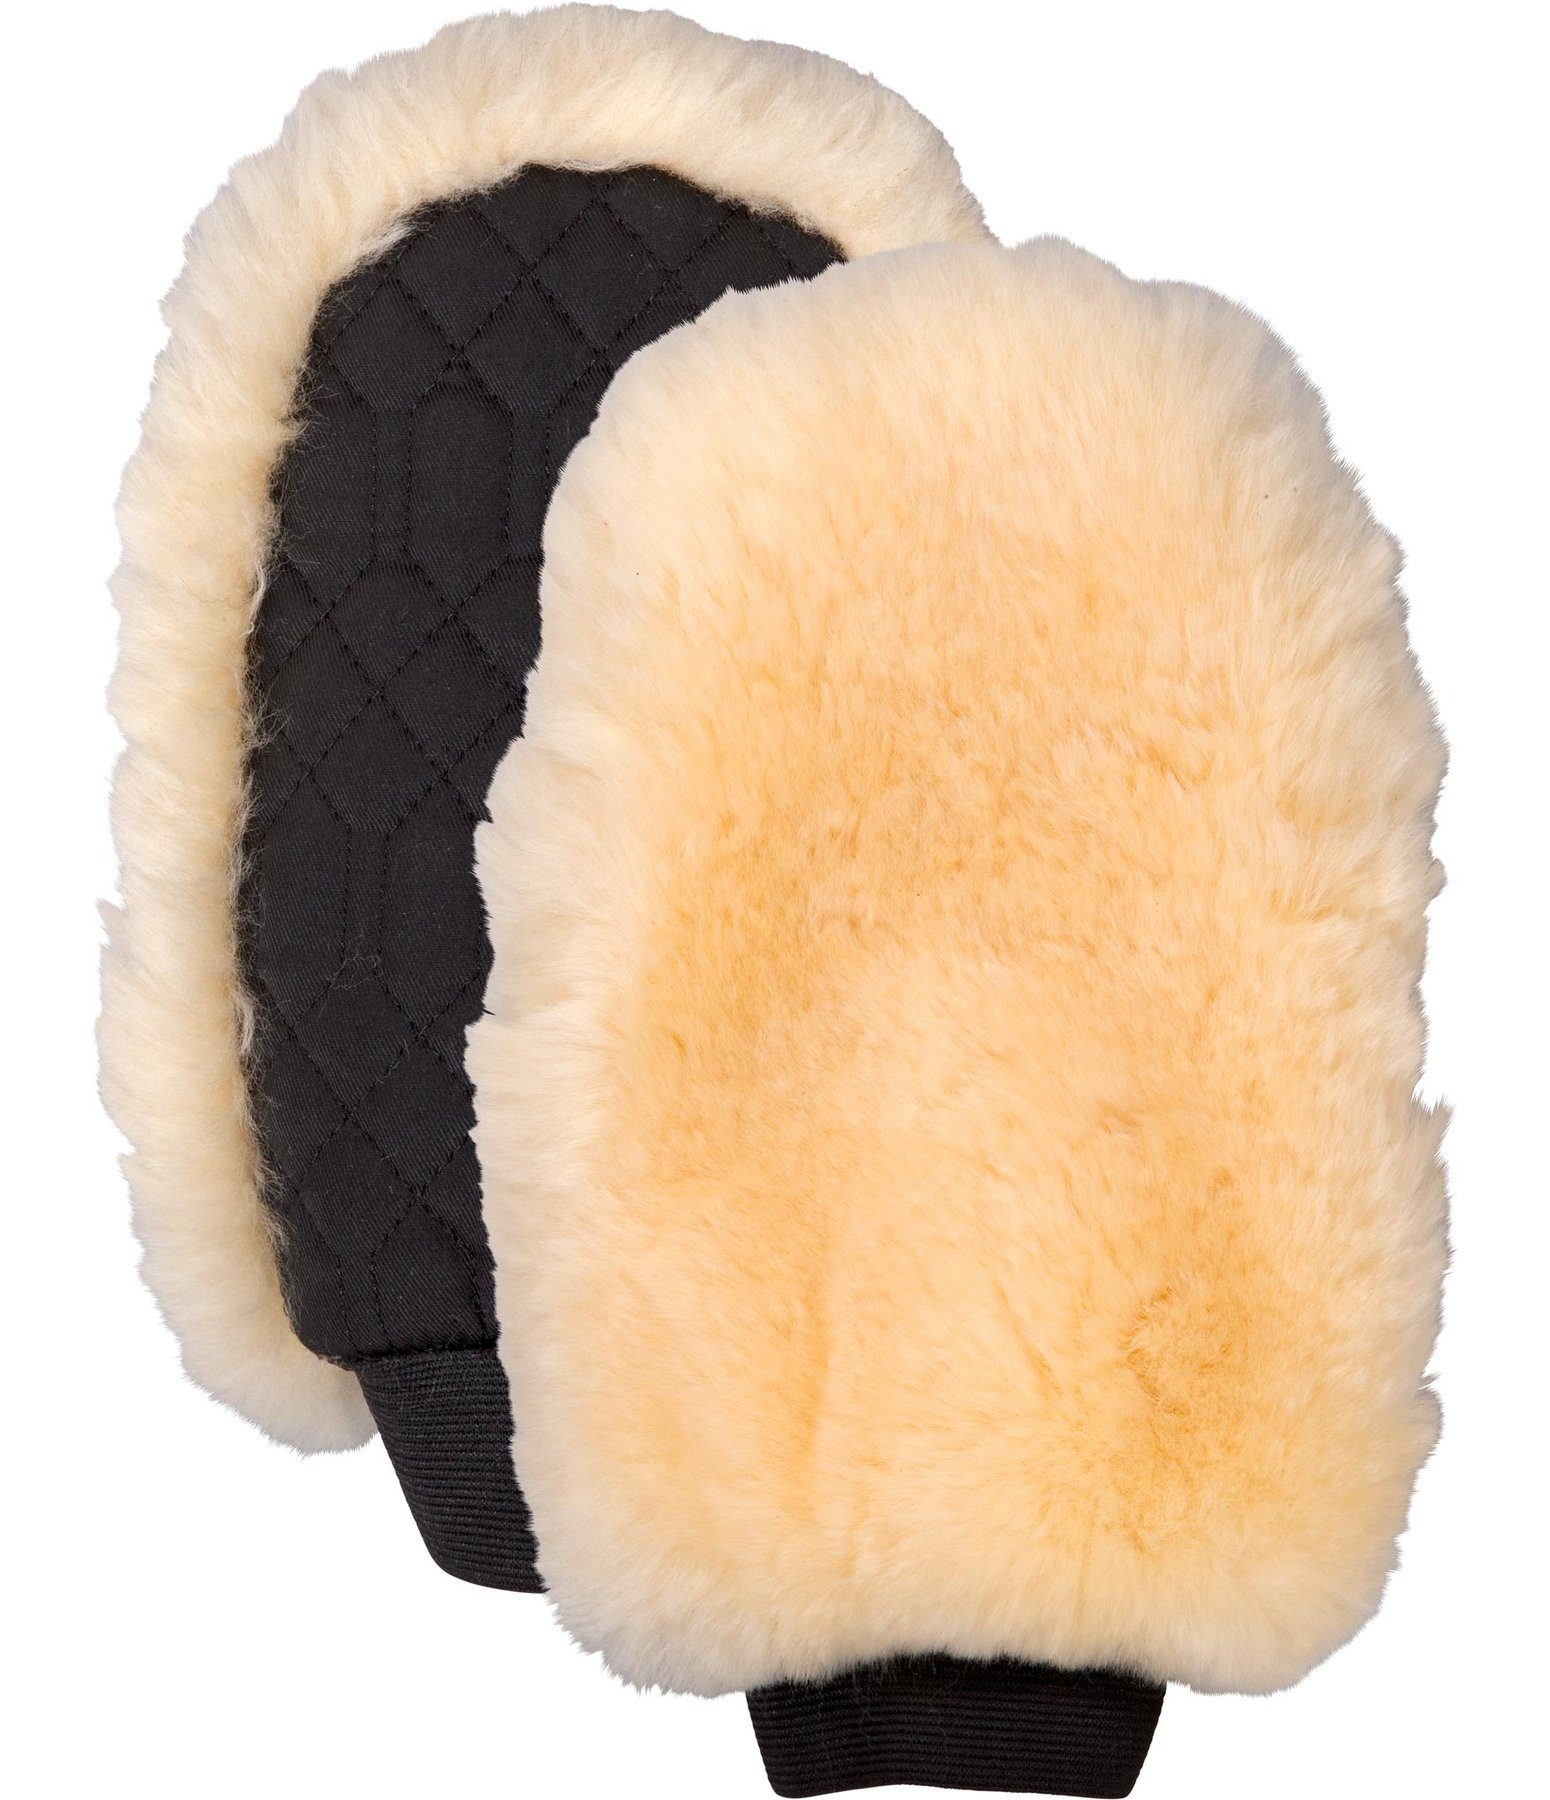 Sheepskin Grooming Mitt Single Sided